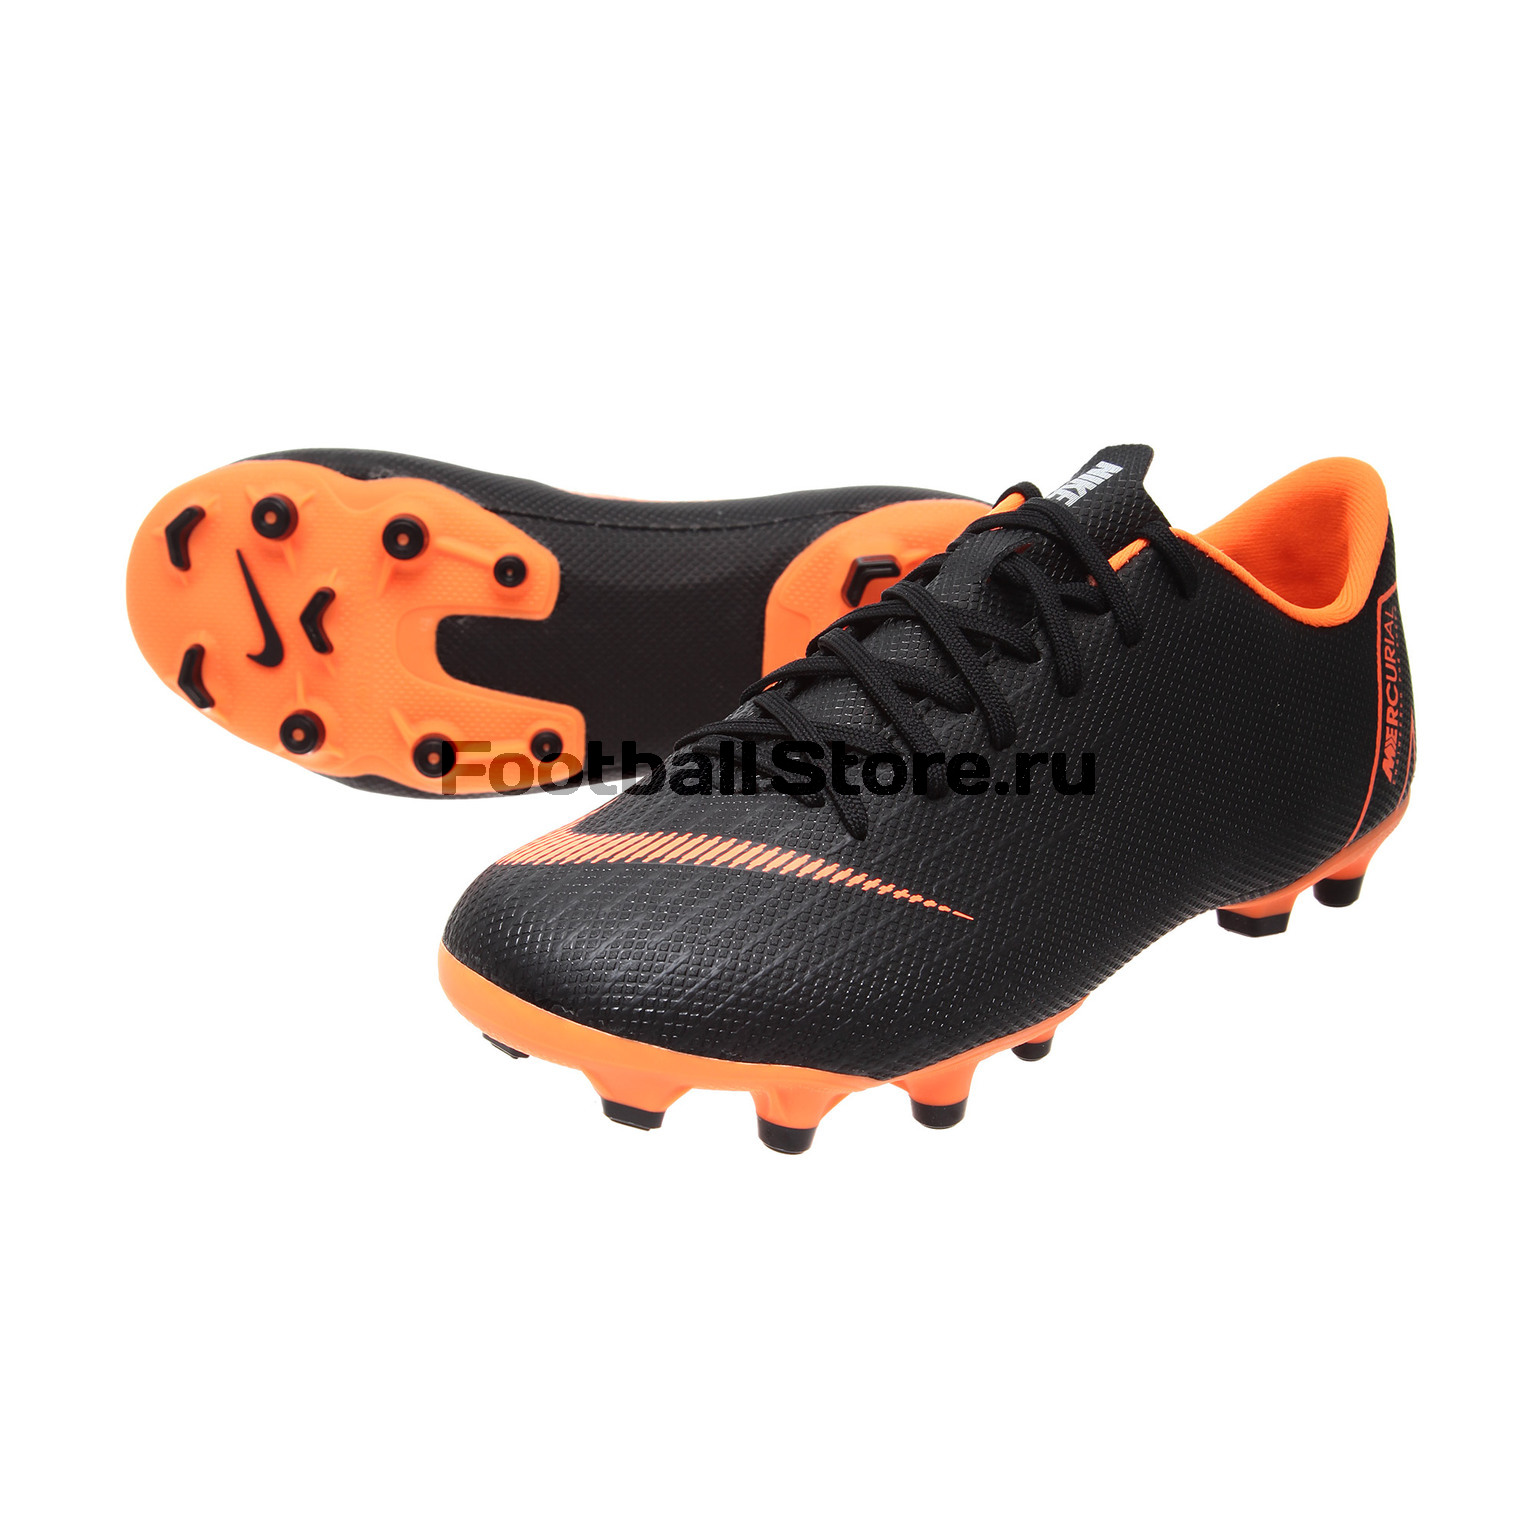 Бутсы Nike JR Vapor 12 Academy GS FG/MG AH7347-081 бутсы nike superfly academy gs cr7 jr fg mg aj3111 390